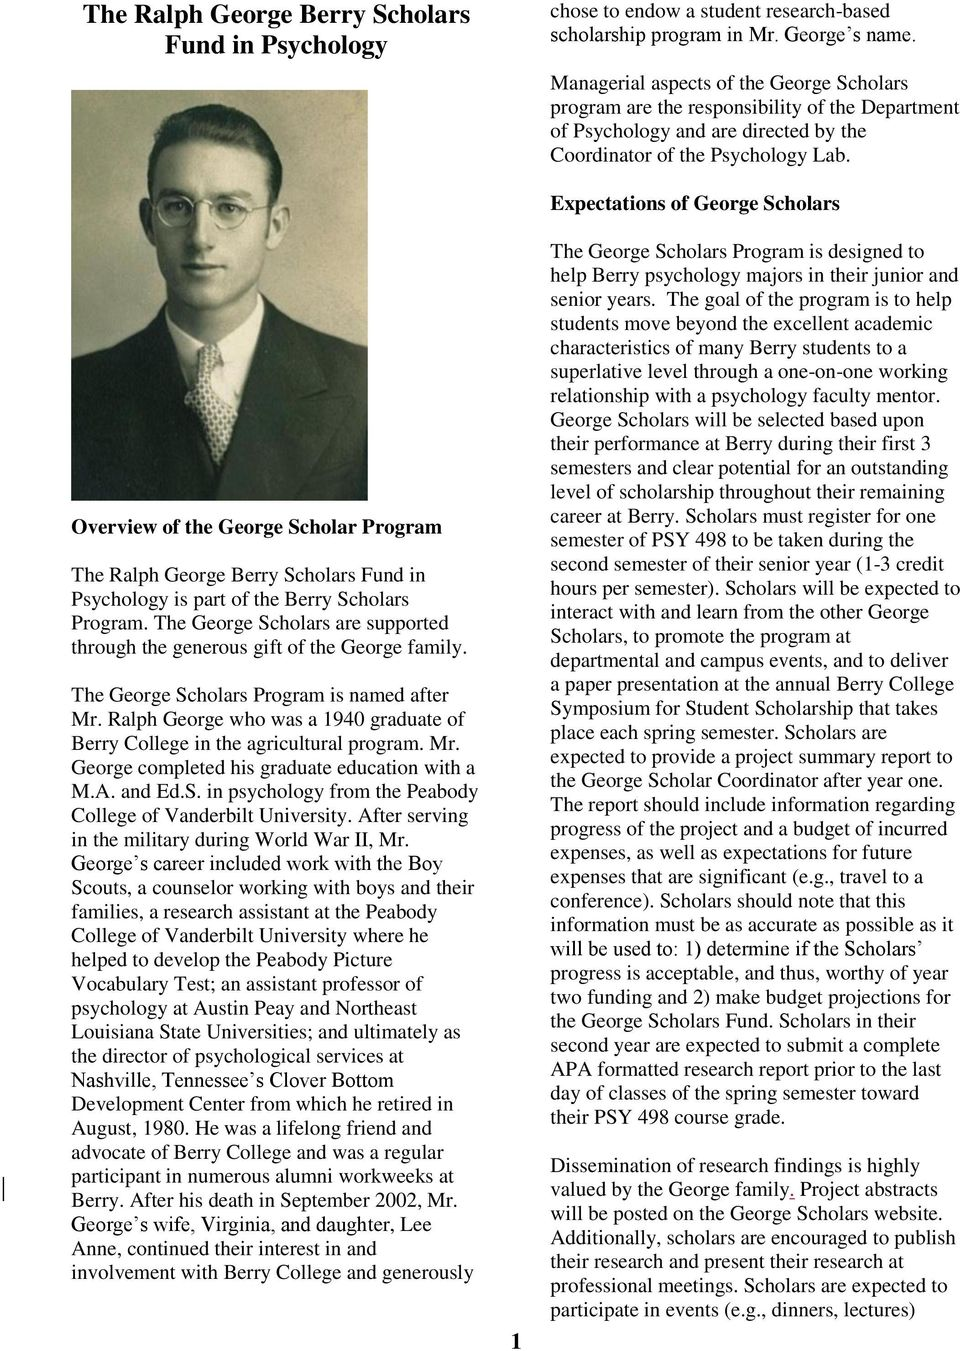 Overview of the George Scholar Program The Ralph George Berry Scholars Fund in Psychology is part of the Berry Scholars Program.